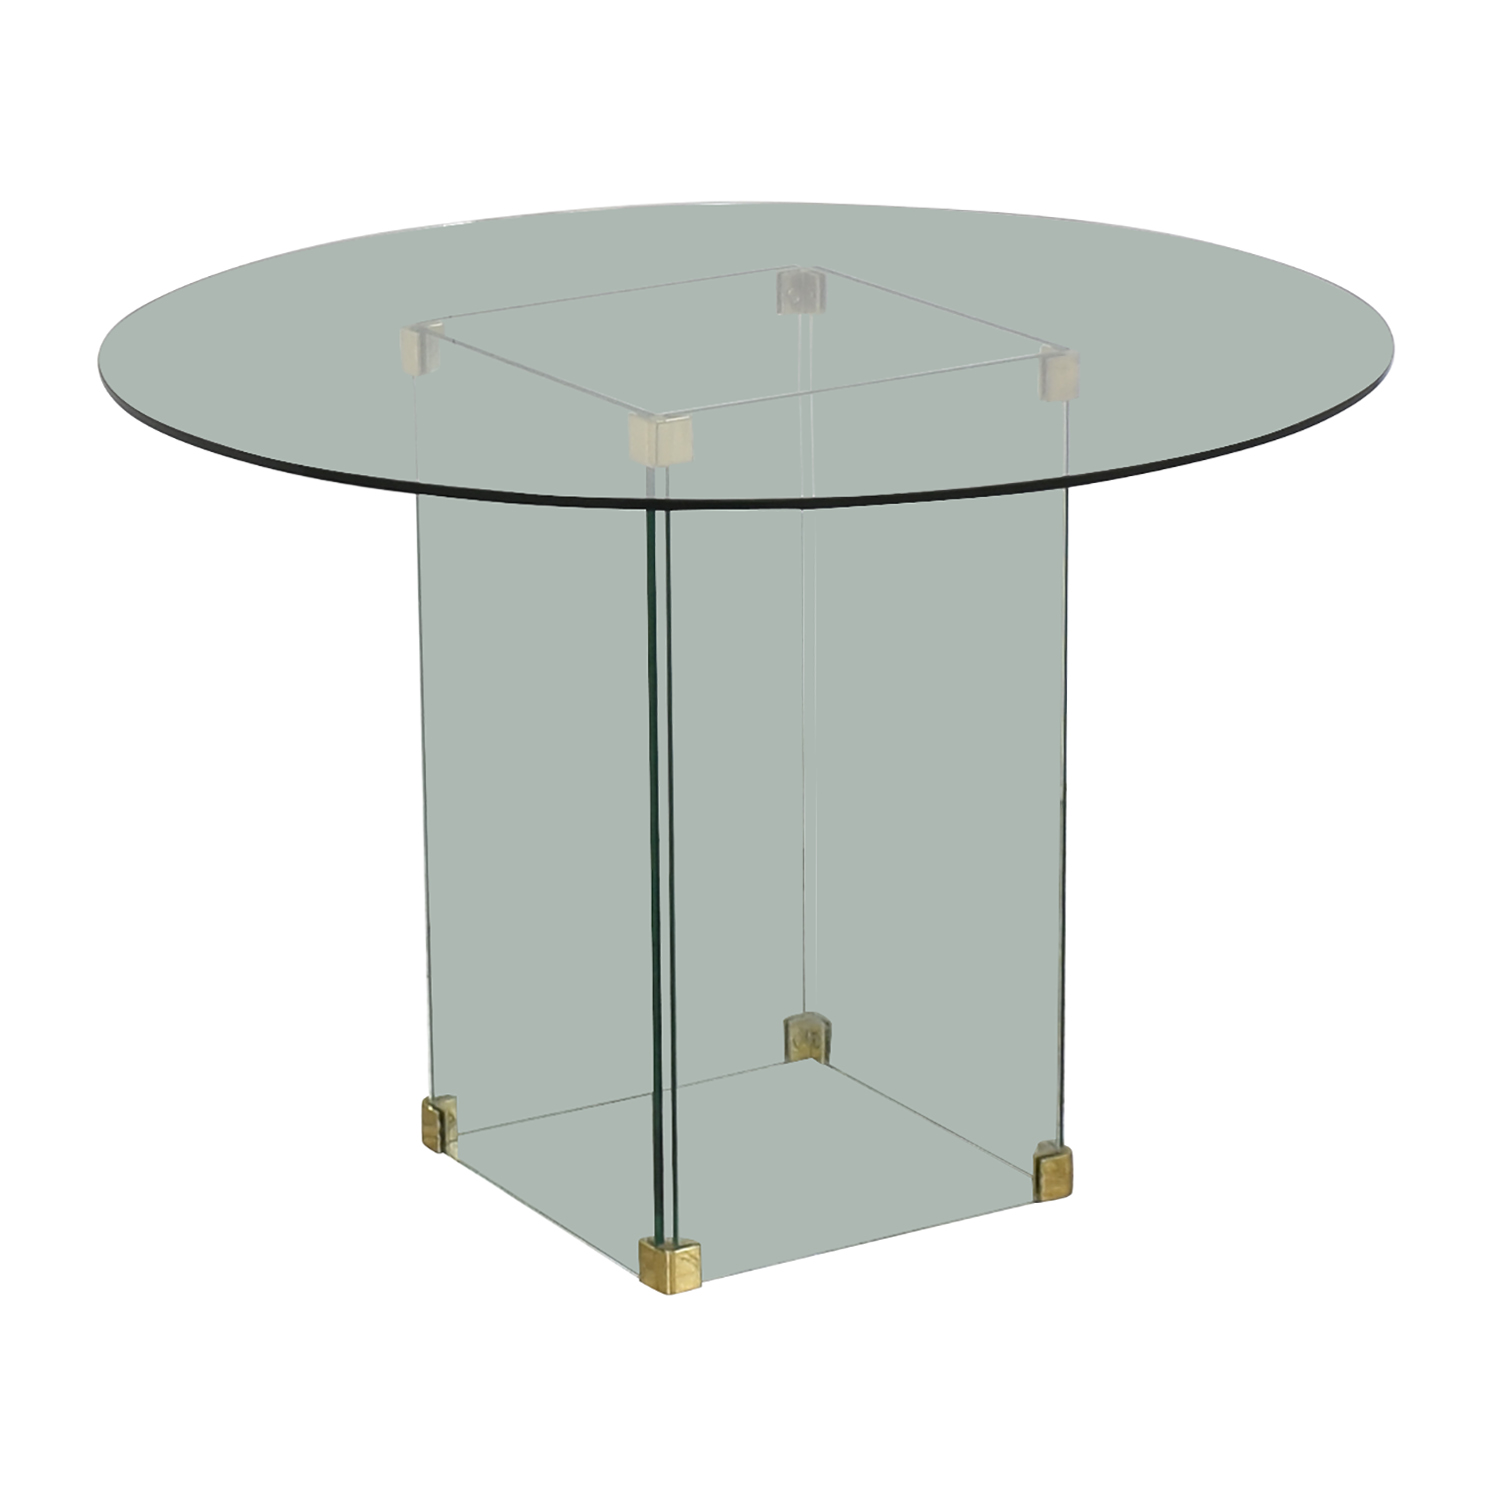 Round Glass Dining Table dimensions